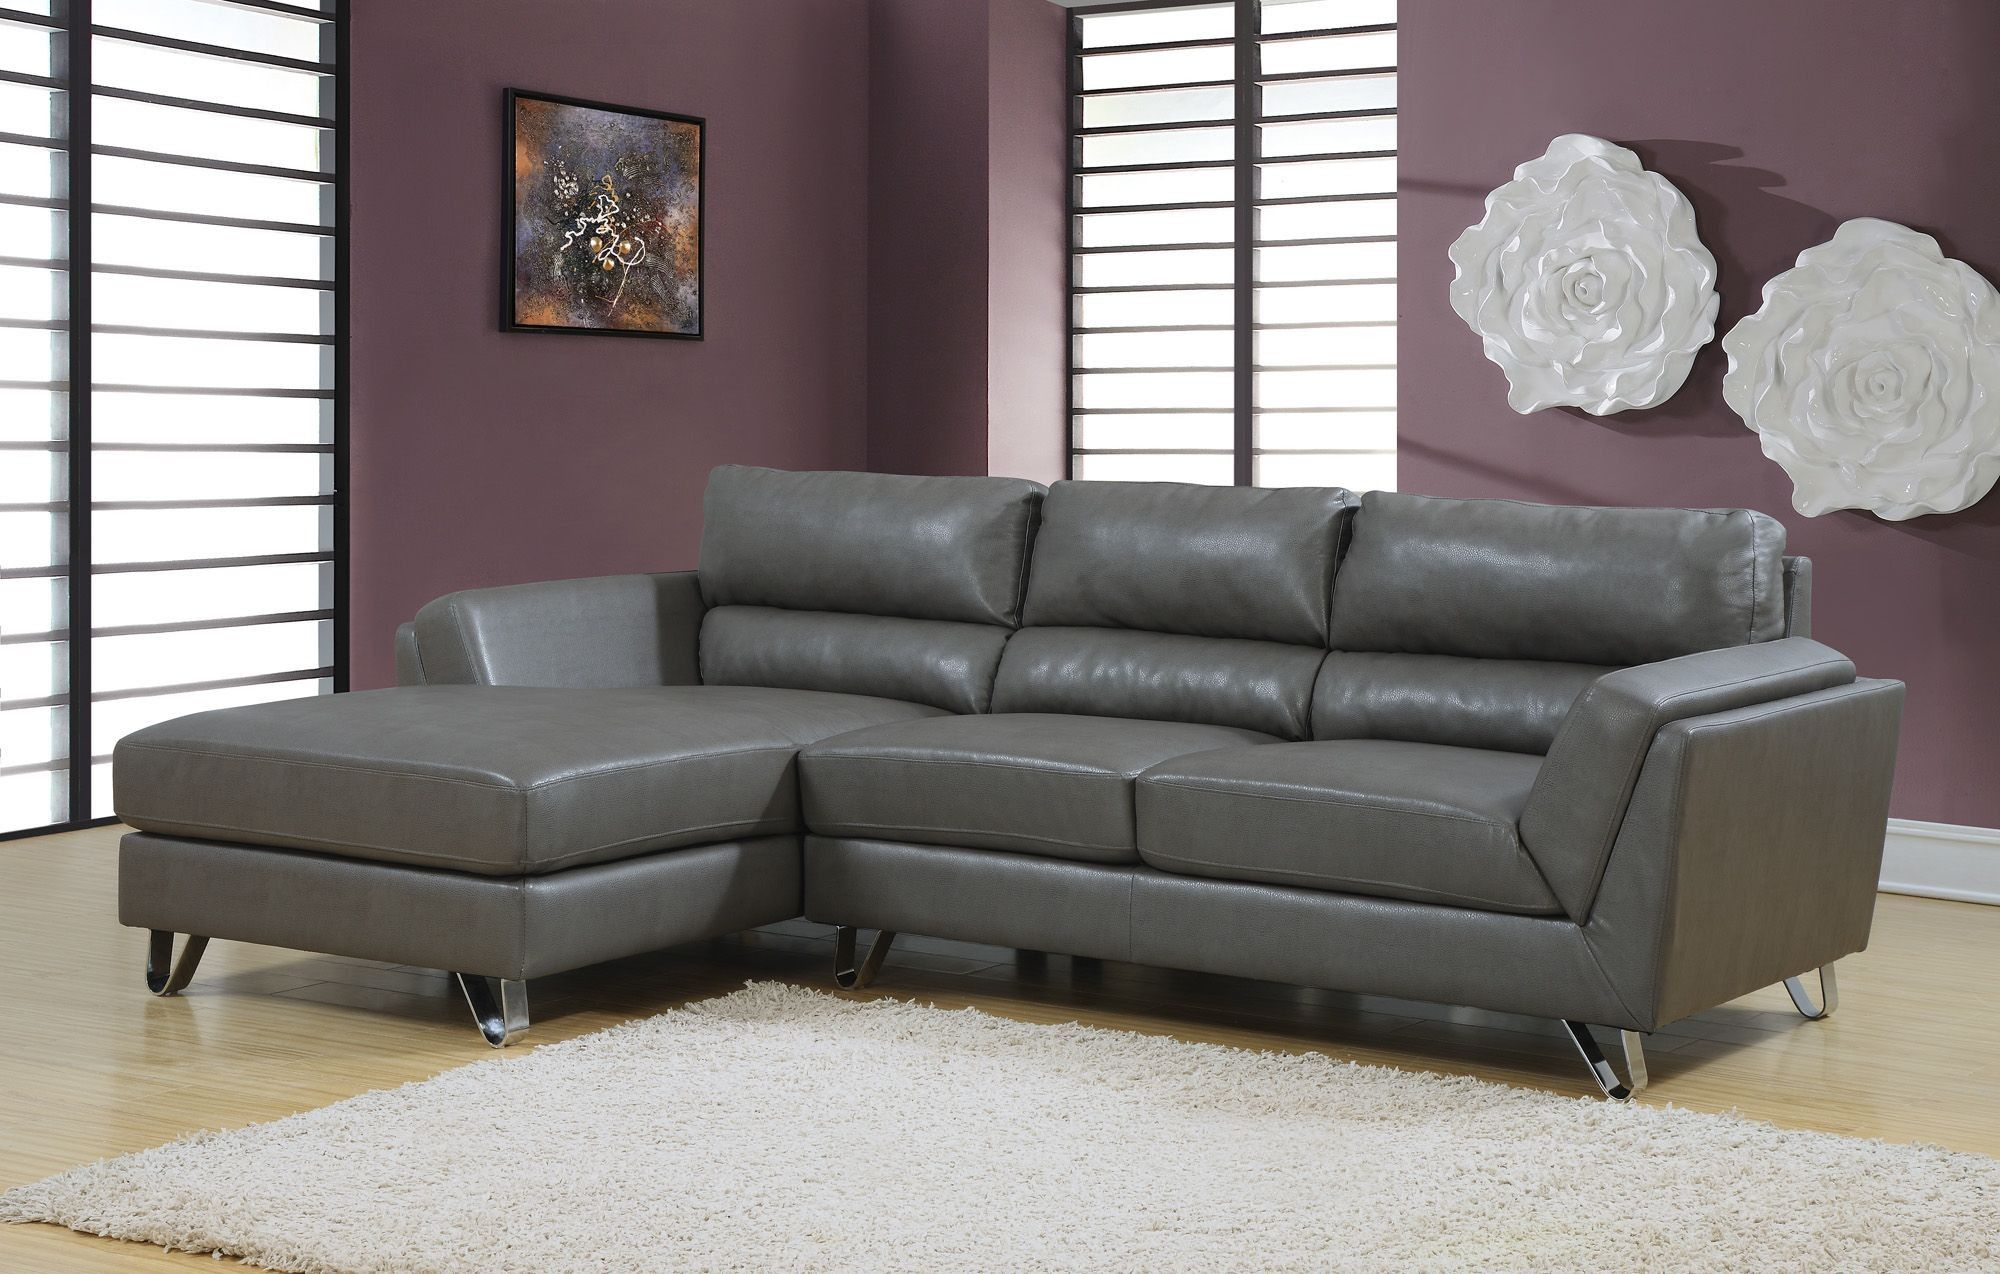 Charcoal Gray Match Sofa Sectional Sofas Federal Way Leather